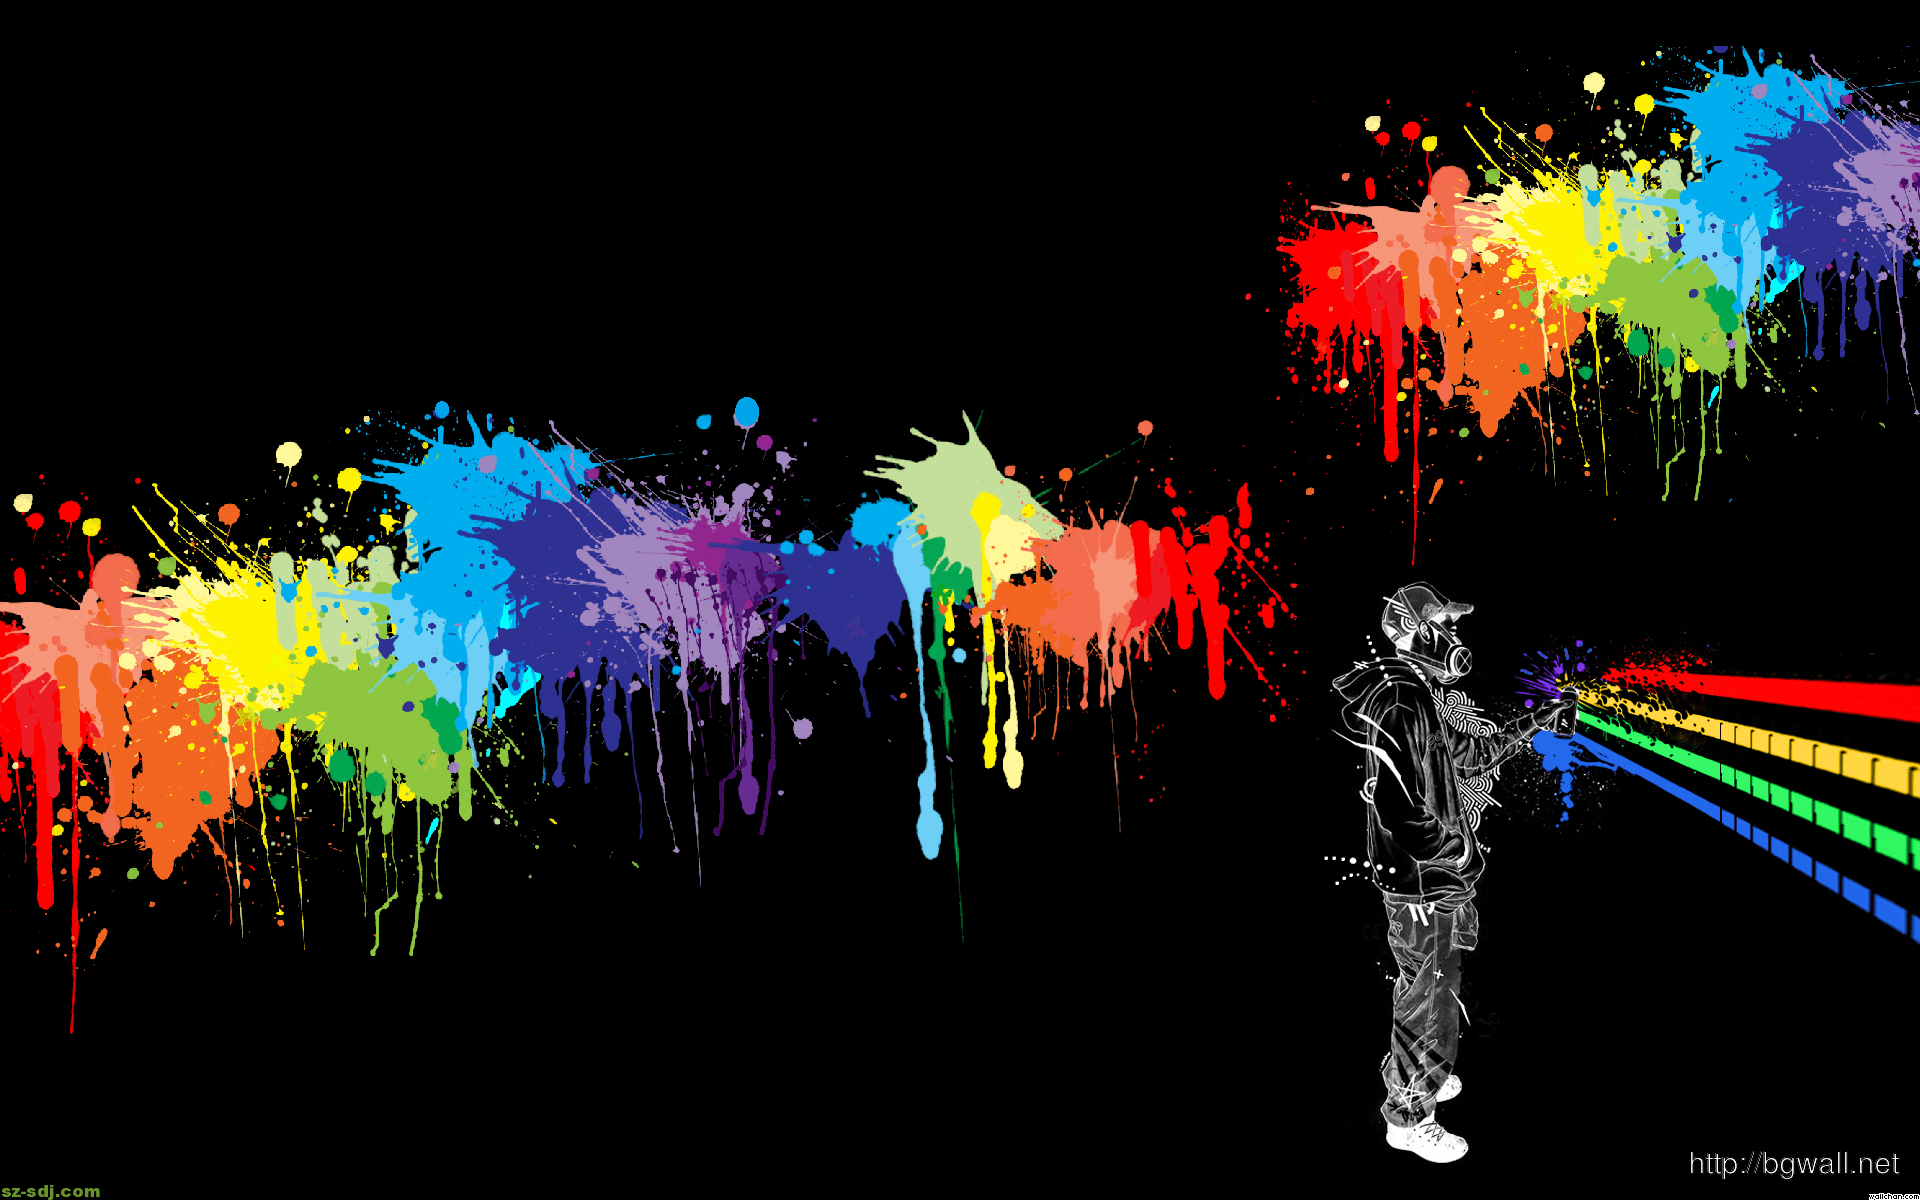 Wallpaper Of Cute Couple With Quotes Abstract Colorfull Spray Paint Wallpaper Background